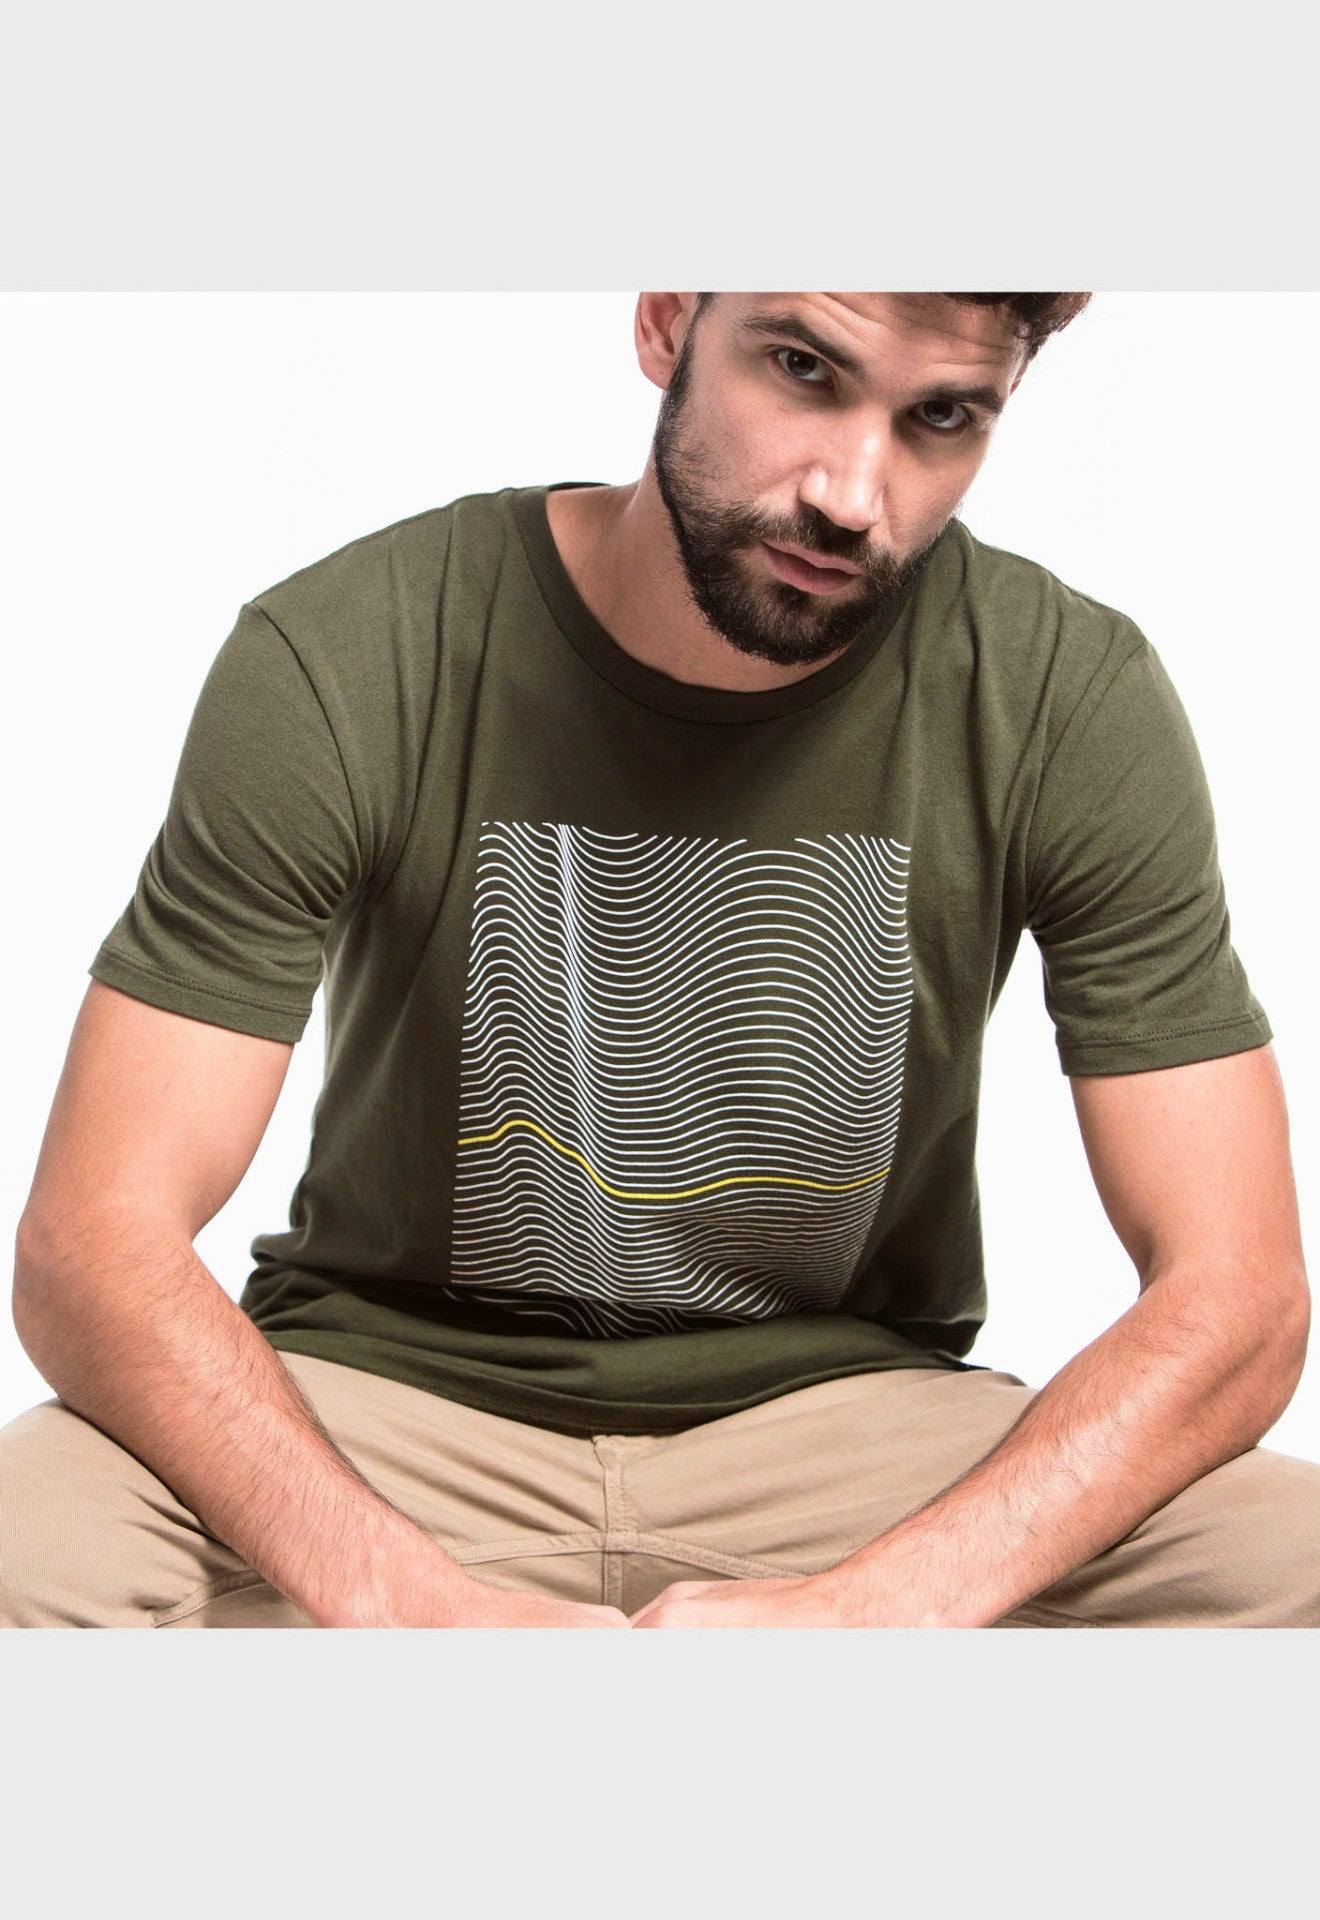 GRAPHICELONGATEDTEE-WAVY(FORESTGREEN)-SELECTIV